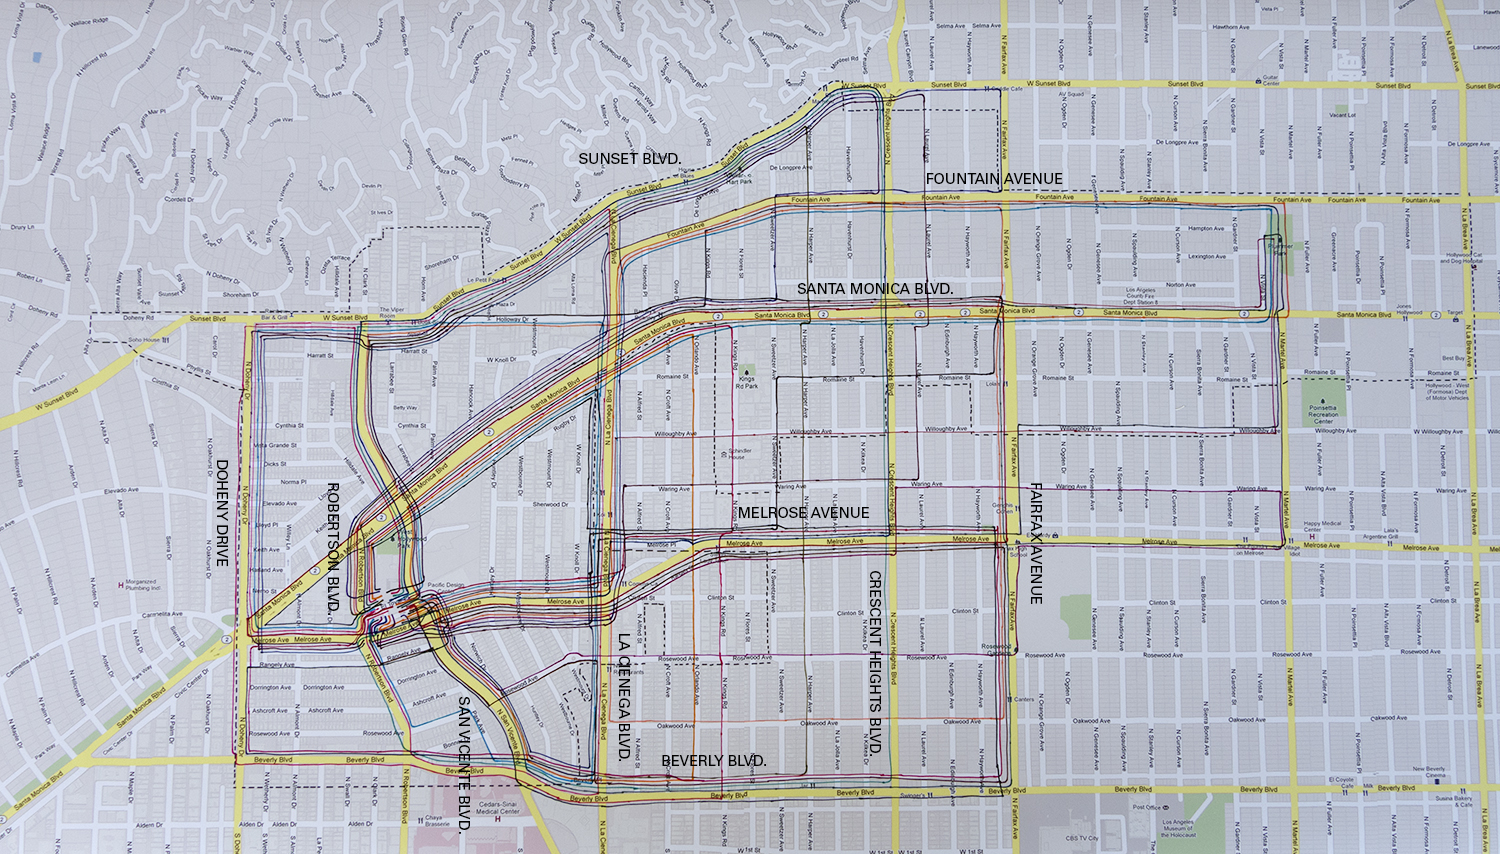 Map showing routes for 100 Walkers, West Hollywood. (Click to enlarge.)